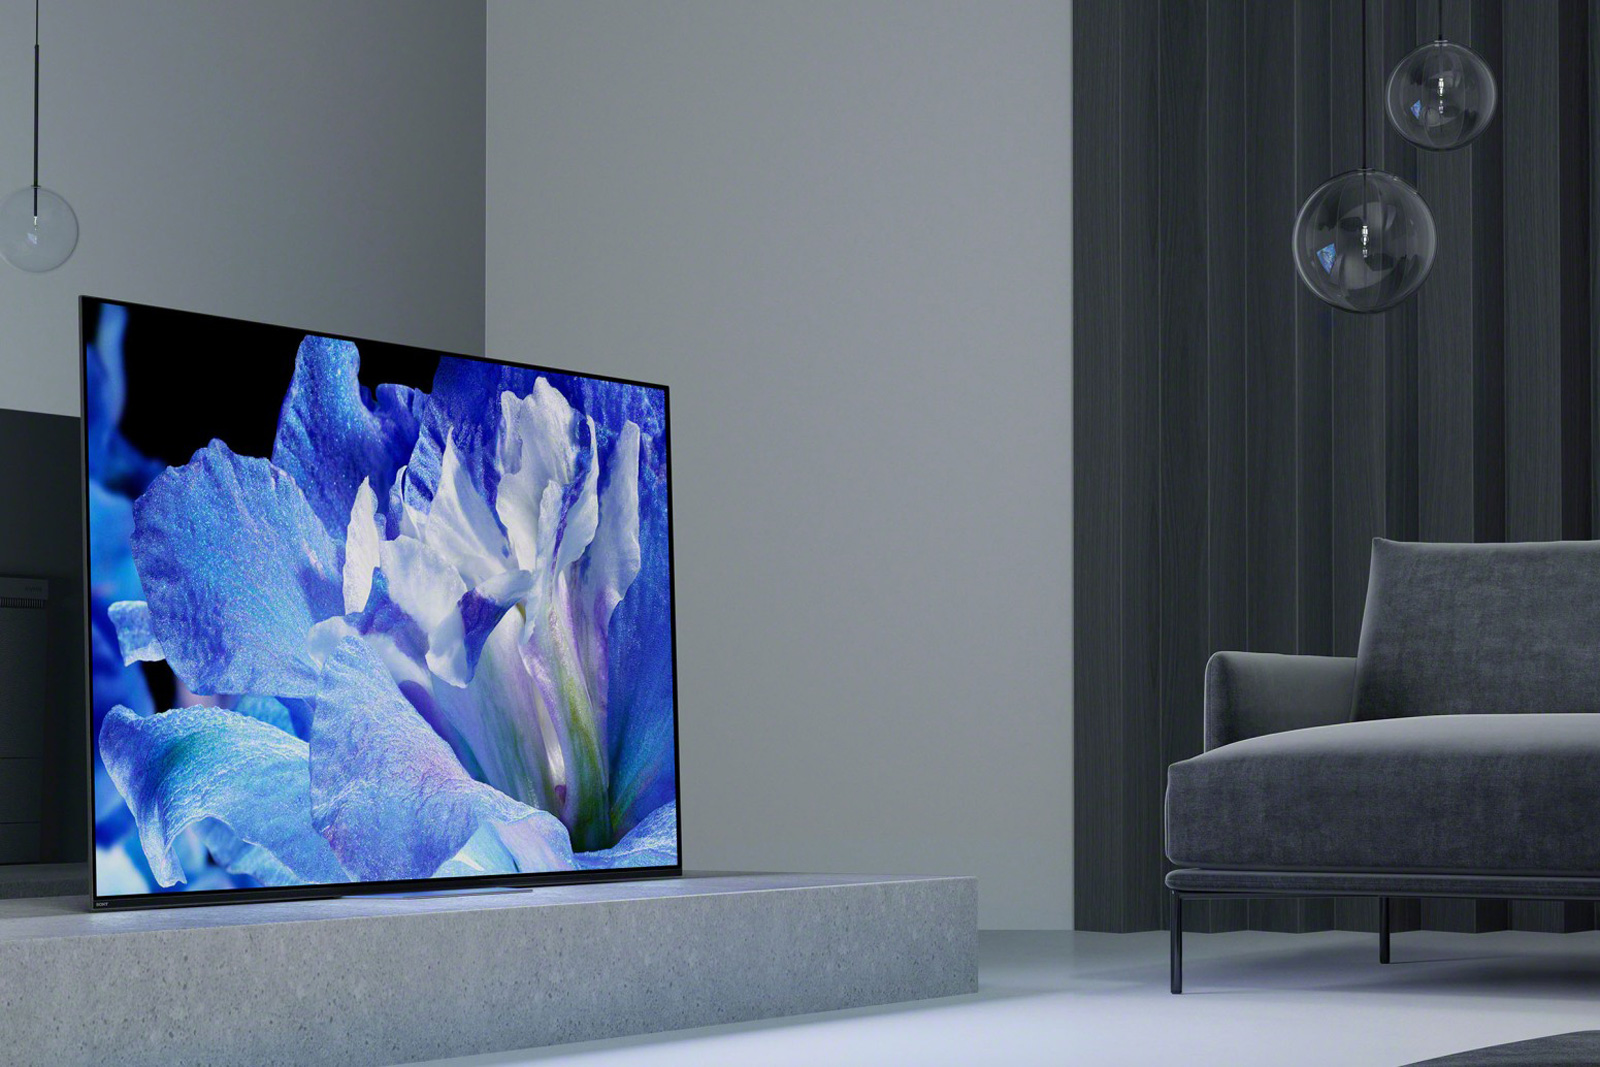 sony 39 s 2018 oled tv starts at 2 800 engadget rss feed howldb. Black Bedroom Furniture Sets. Home Design Ideas